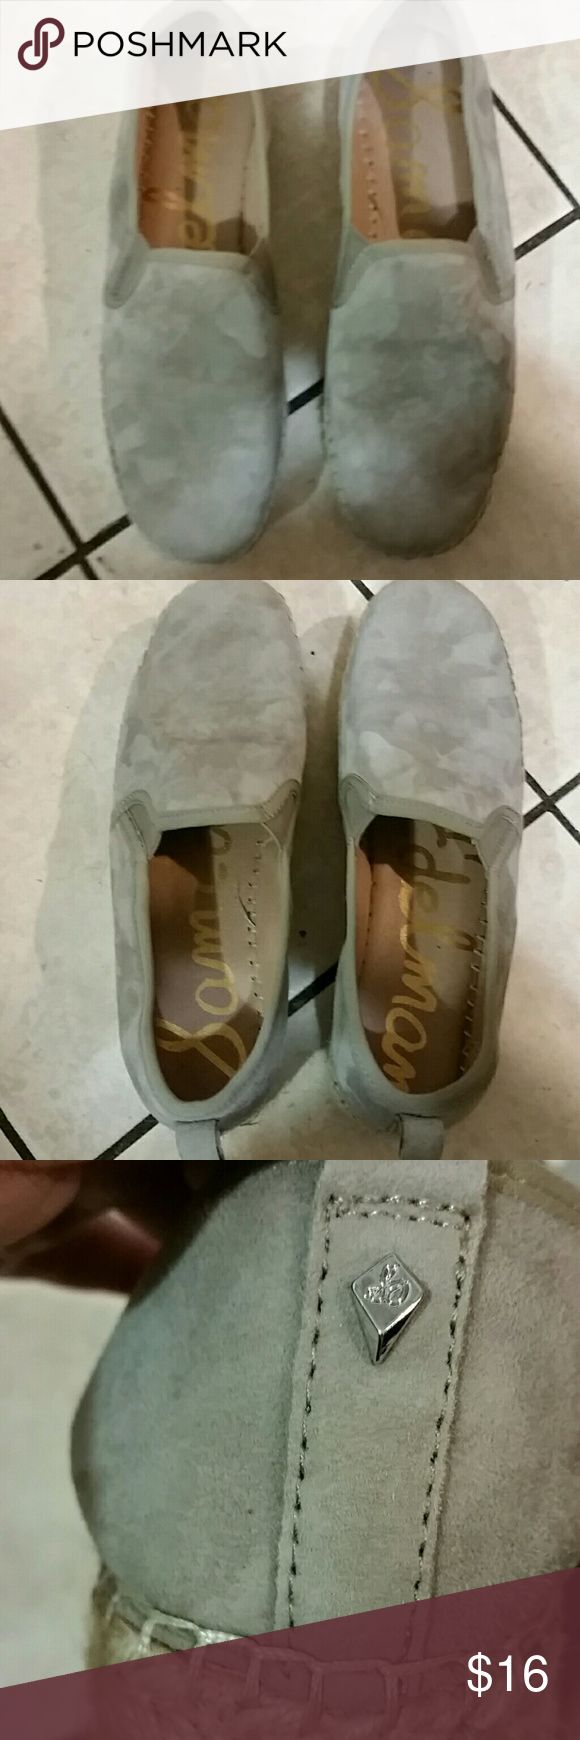 Sam elderman ladies shoes size 7.5 leather Awesome shoes great color goes with everything elastic up top clean inside only wore once suede and leather all in all excellent condition. sam elderman Shoes